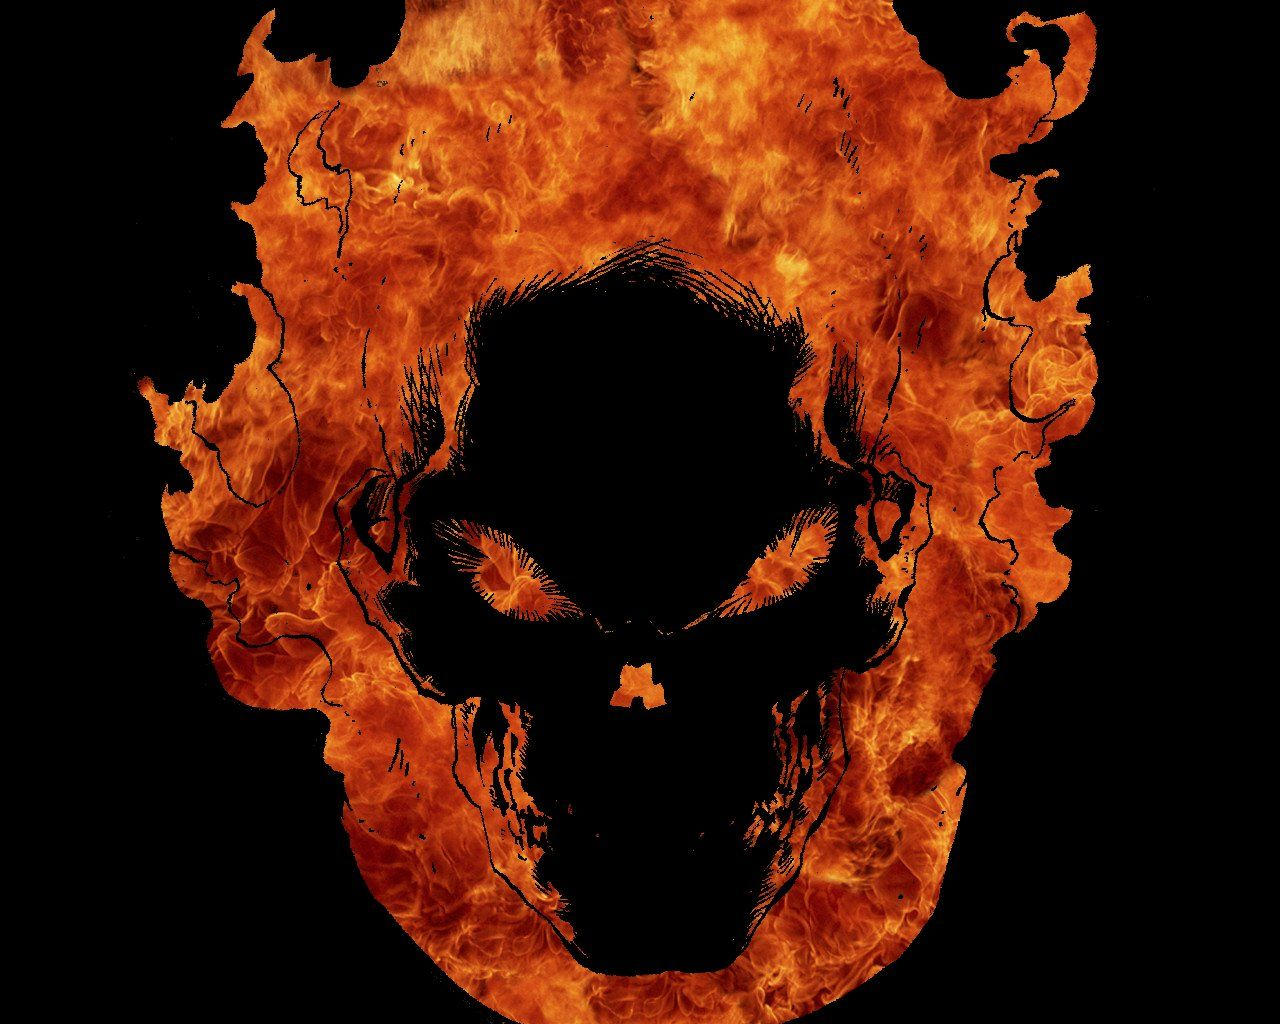 Ghost Rider Skull Wallpapers 1280x1024